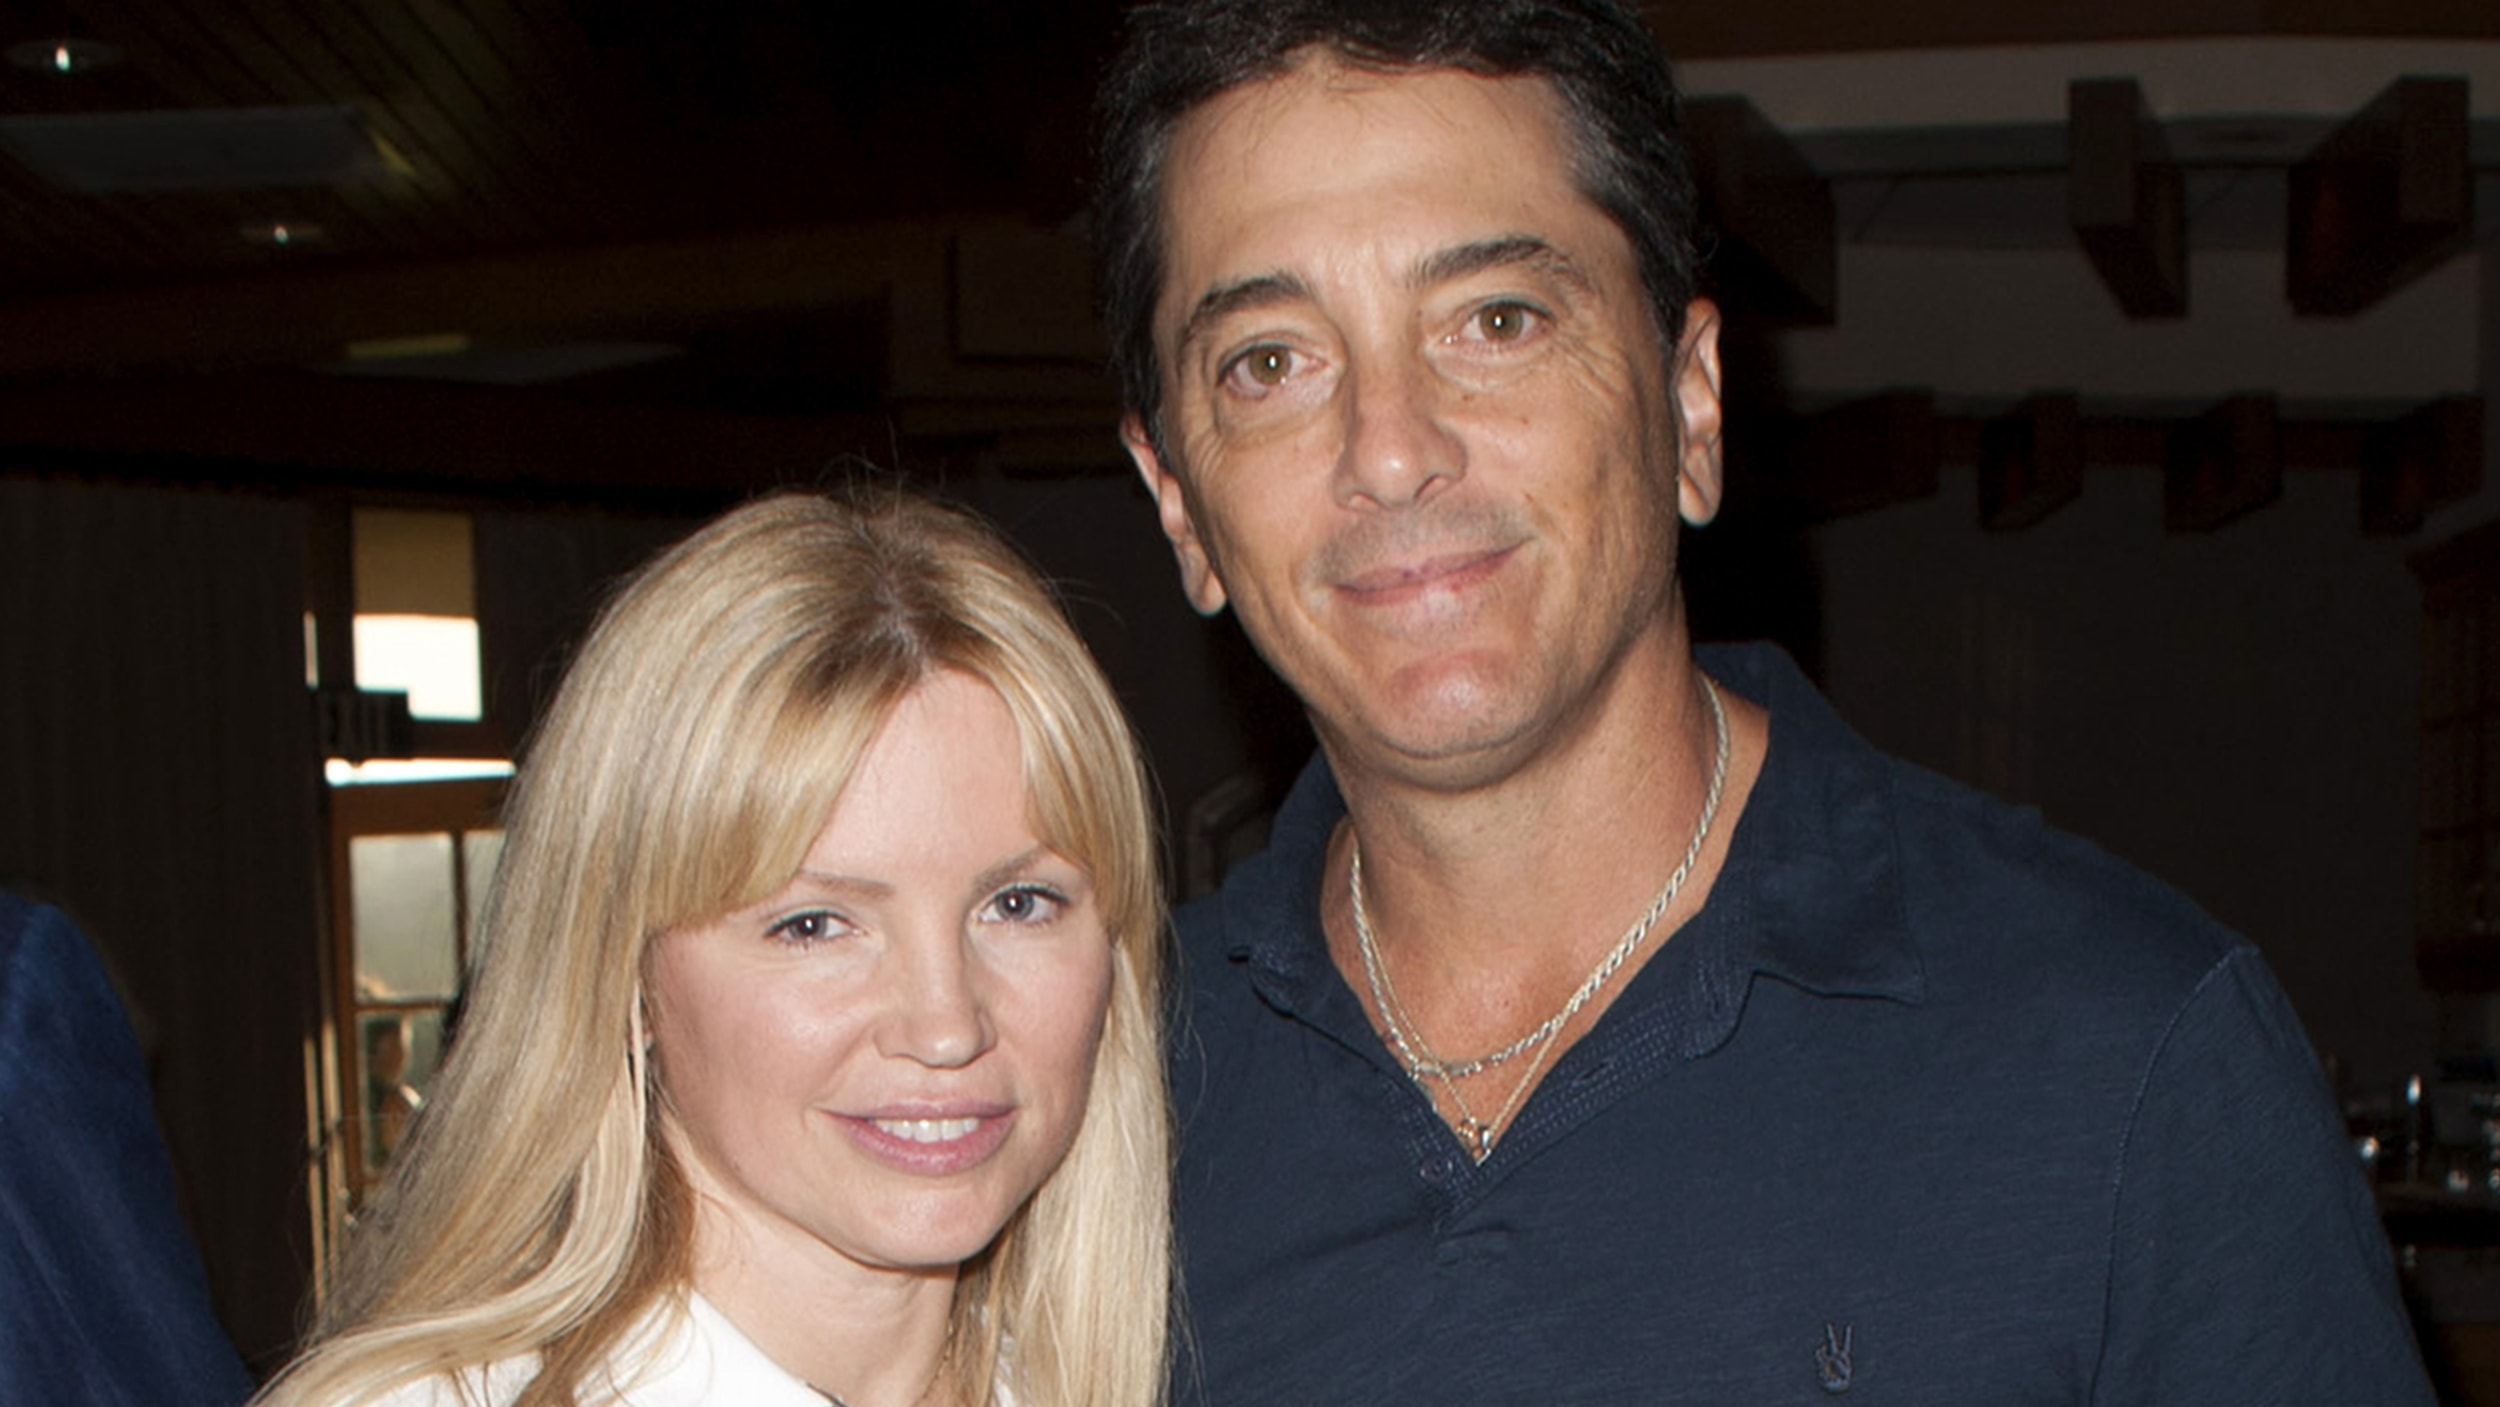 Scott Baio Full hd wallpapers